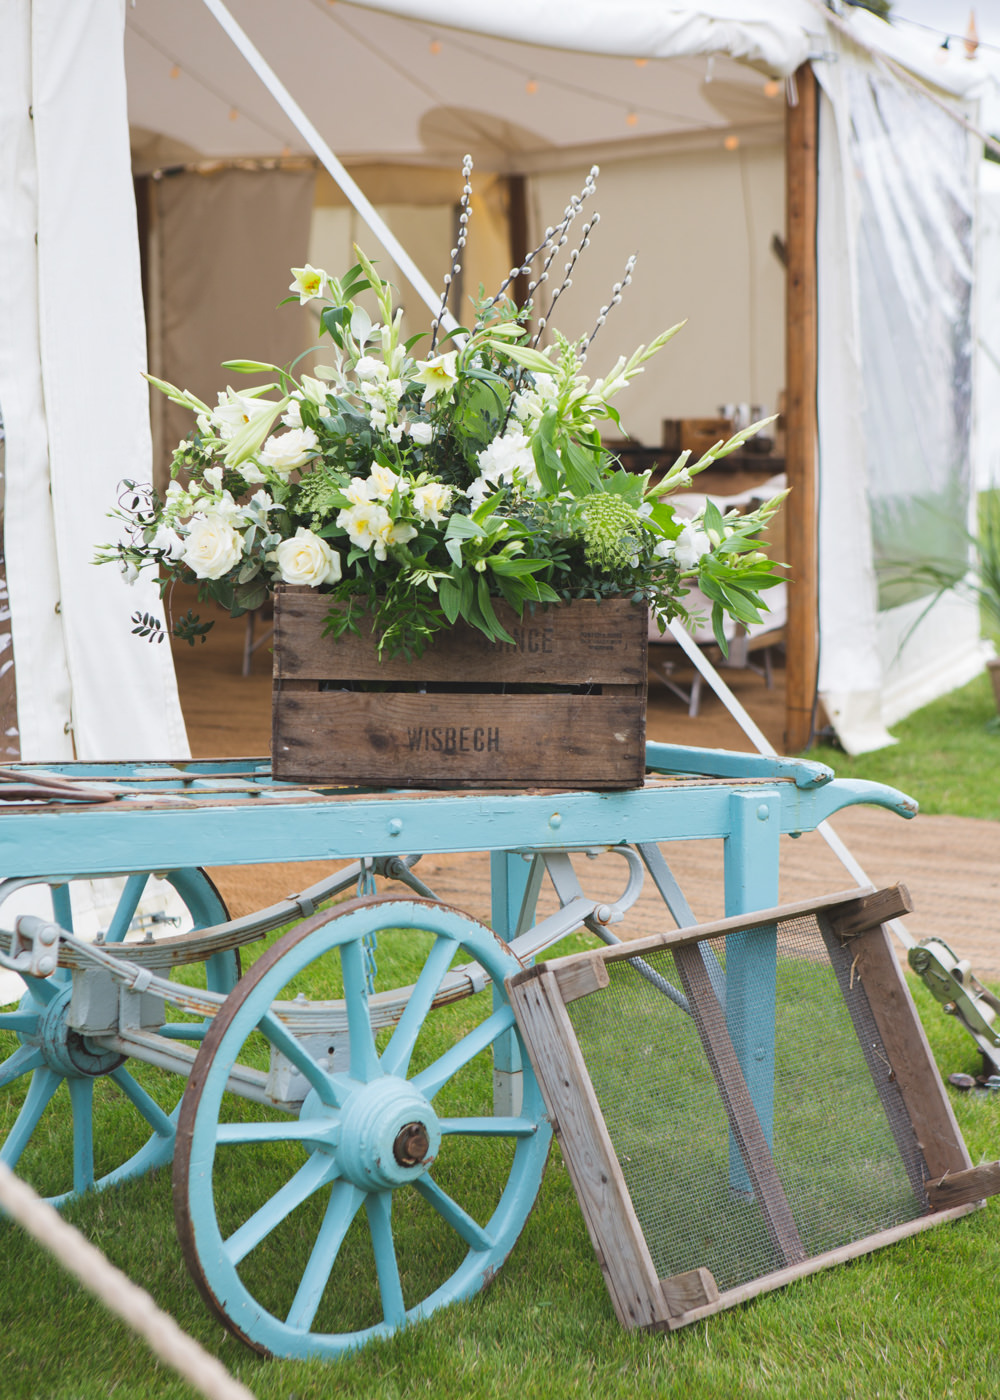 Wagon Trailer Decor Crate Flowers Wooden Airbnb Wedding Pickavance Weddings